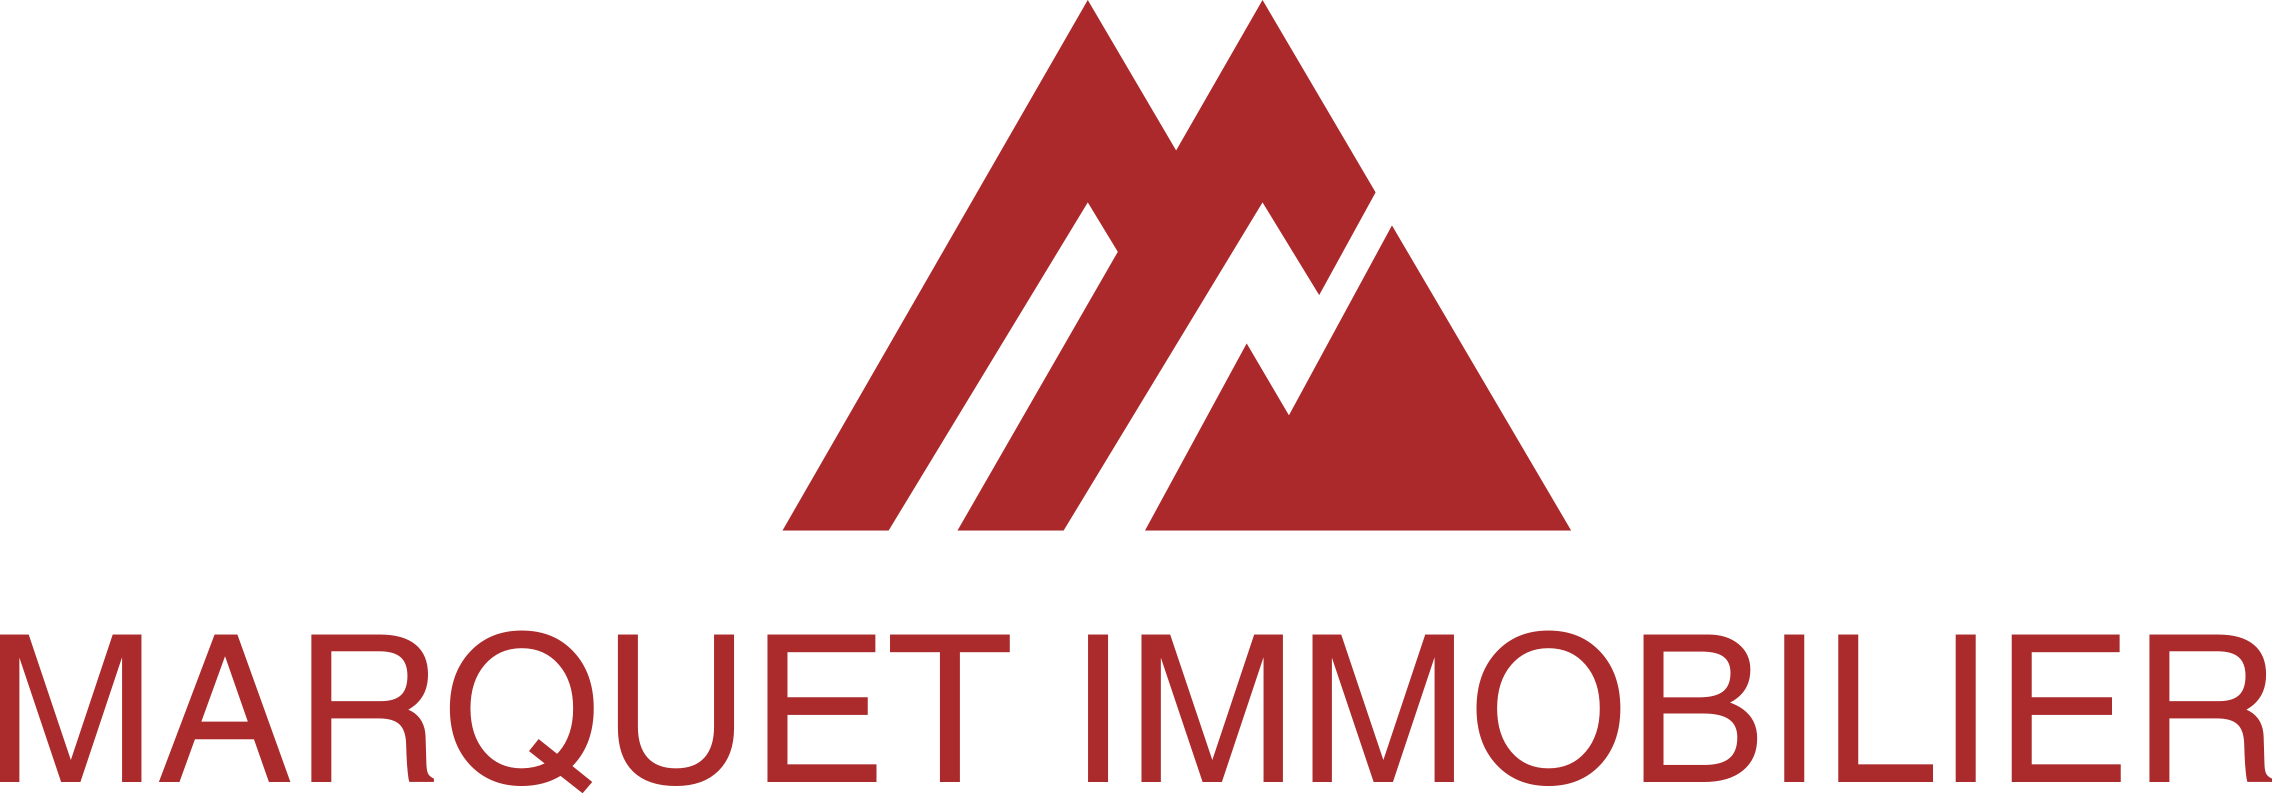 MARQUET IMMOBILIER